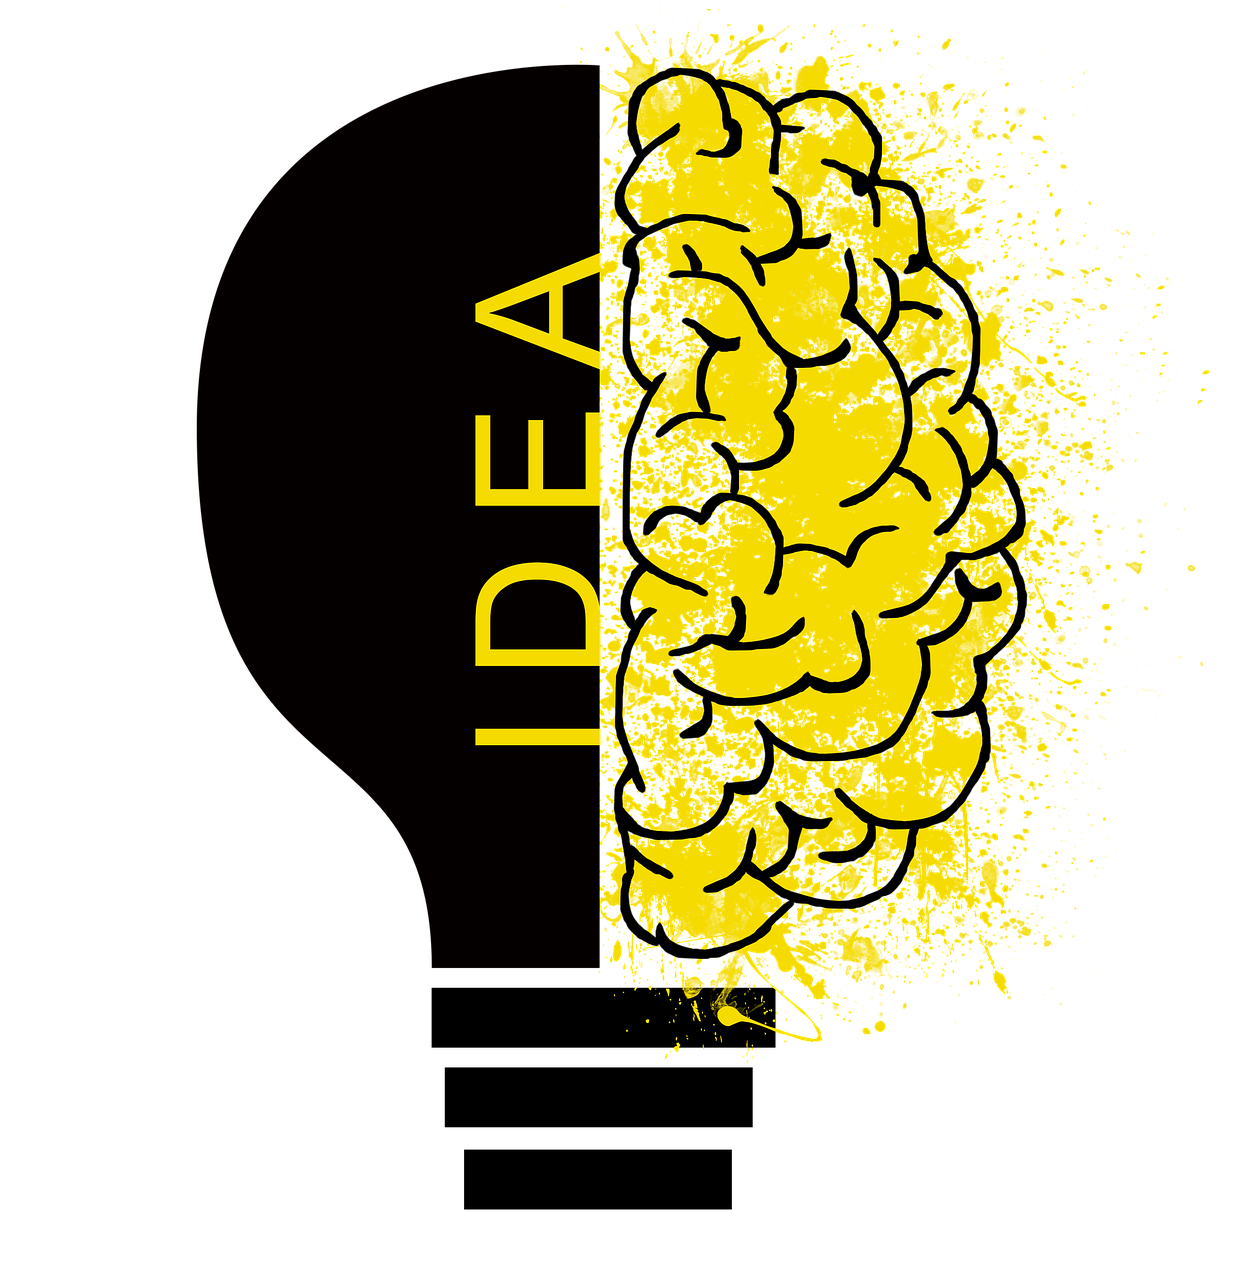 A brain, one half yellow, the other half made up of a black lightbulb with the word idea